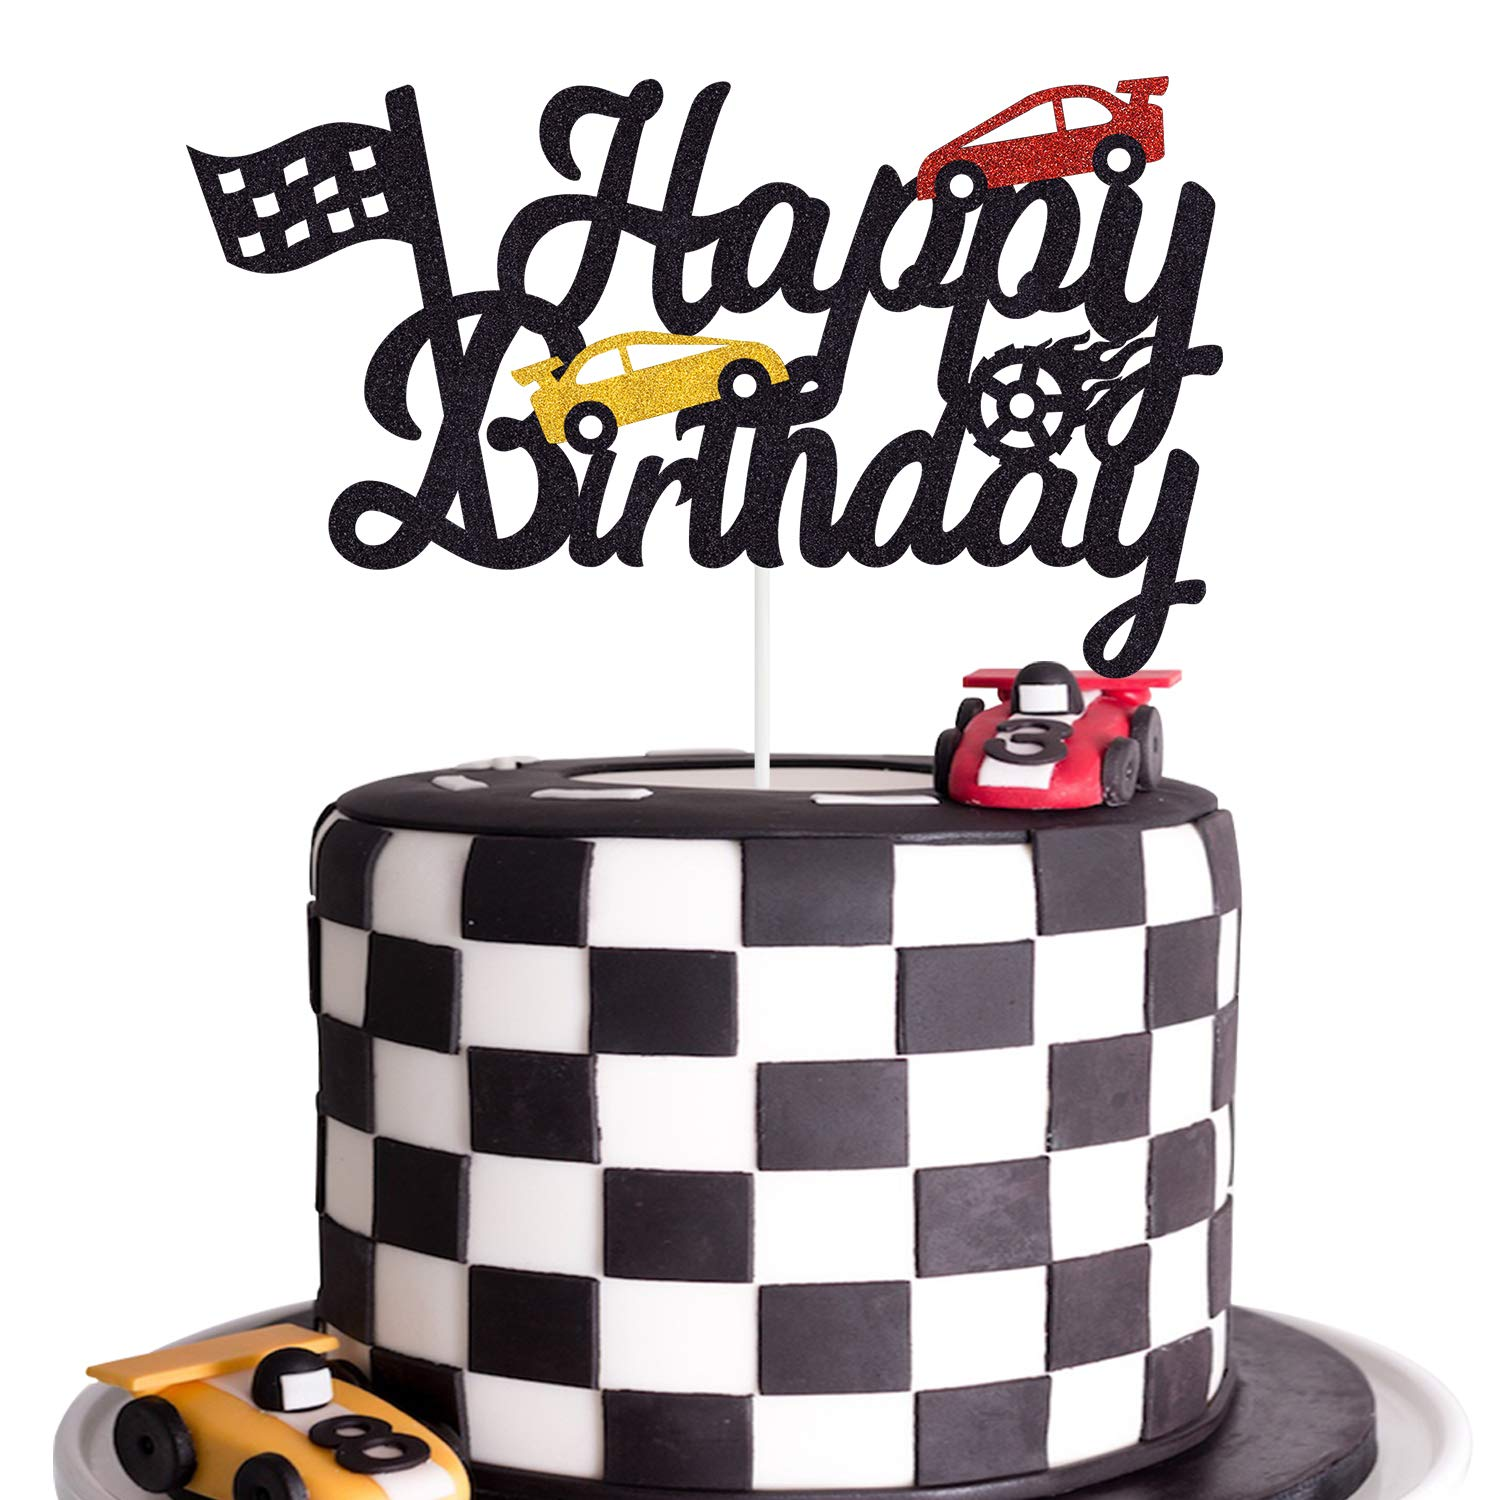 Swell Race Car Birthday Cake Topper Happy Birthday Cake Decor Chequered Funny Birthday Cards Online Elaedamsfinfo